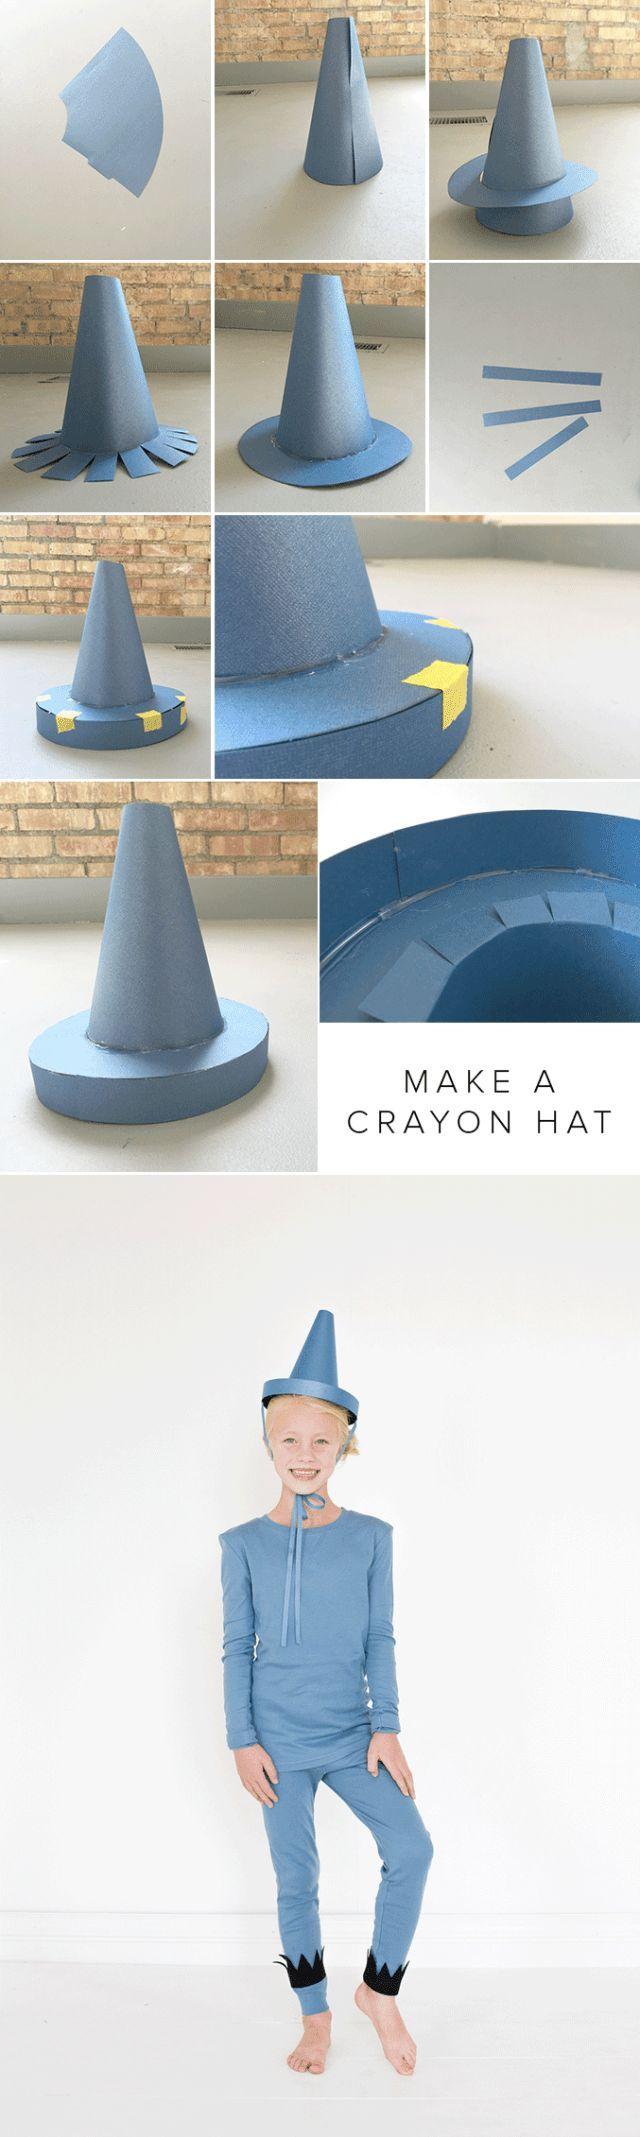 37 best Crayola images on Pinterest | Crayons, Shop by and Crayon ...